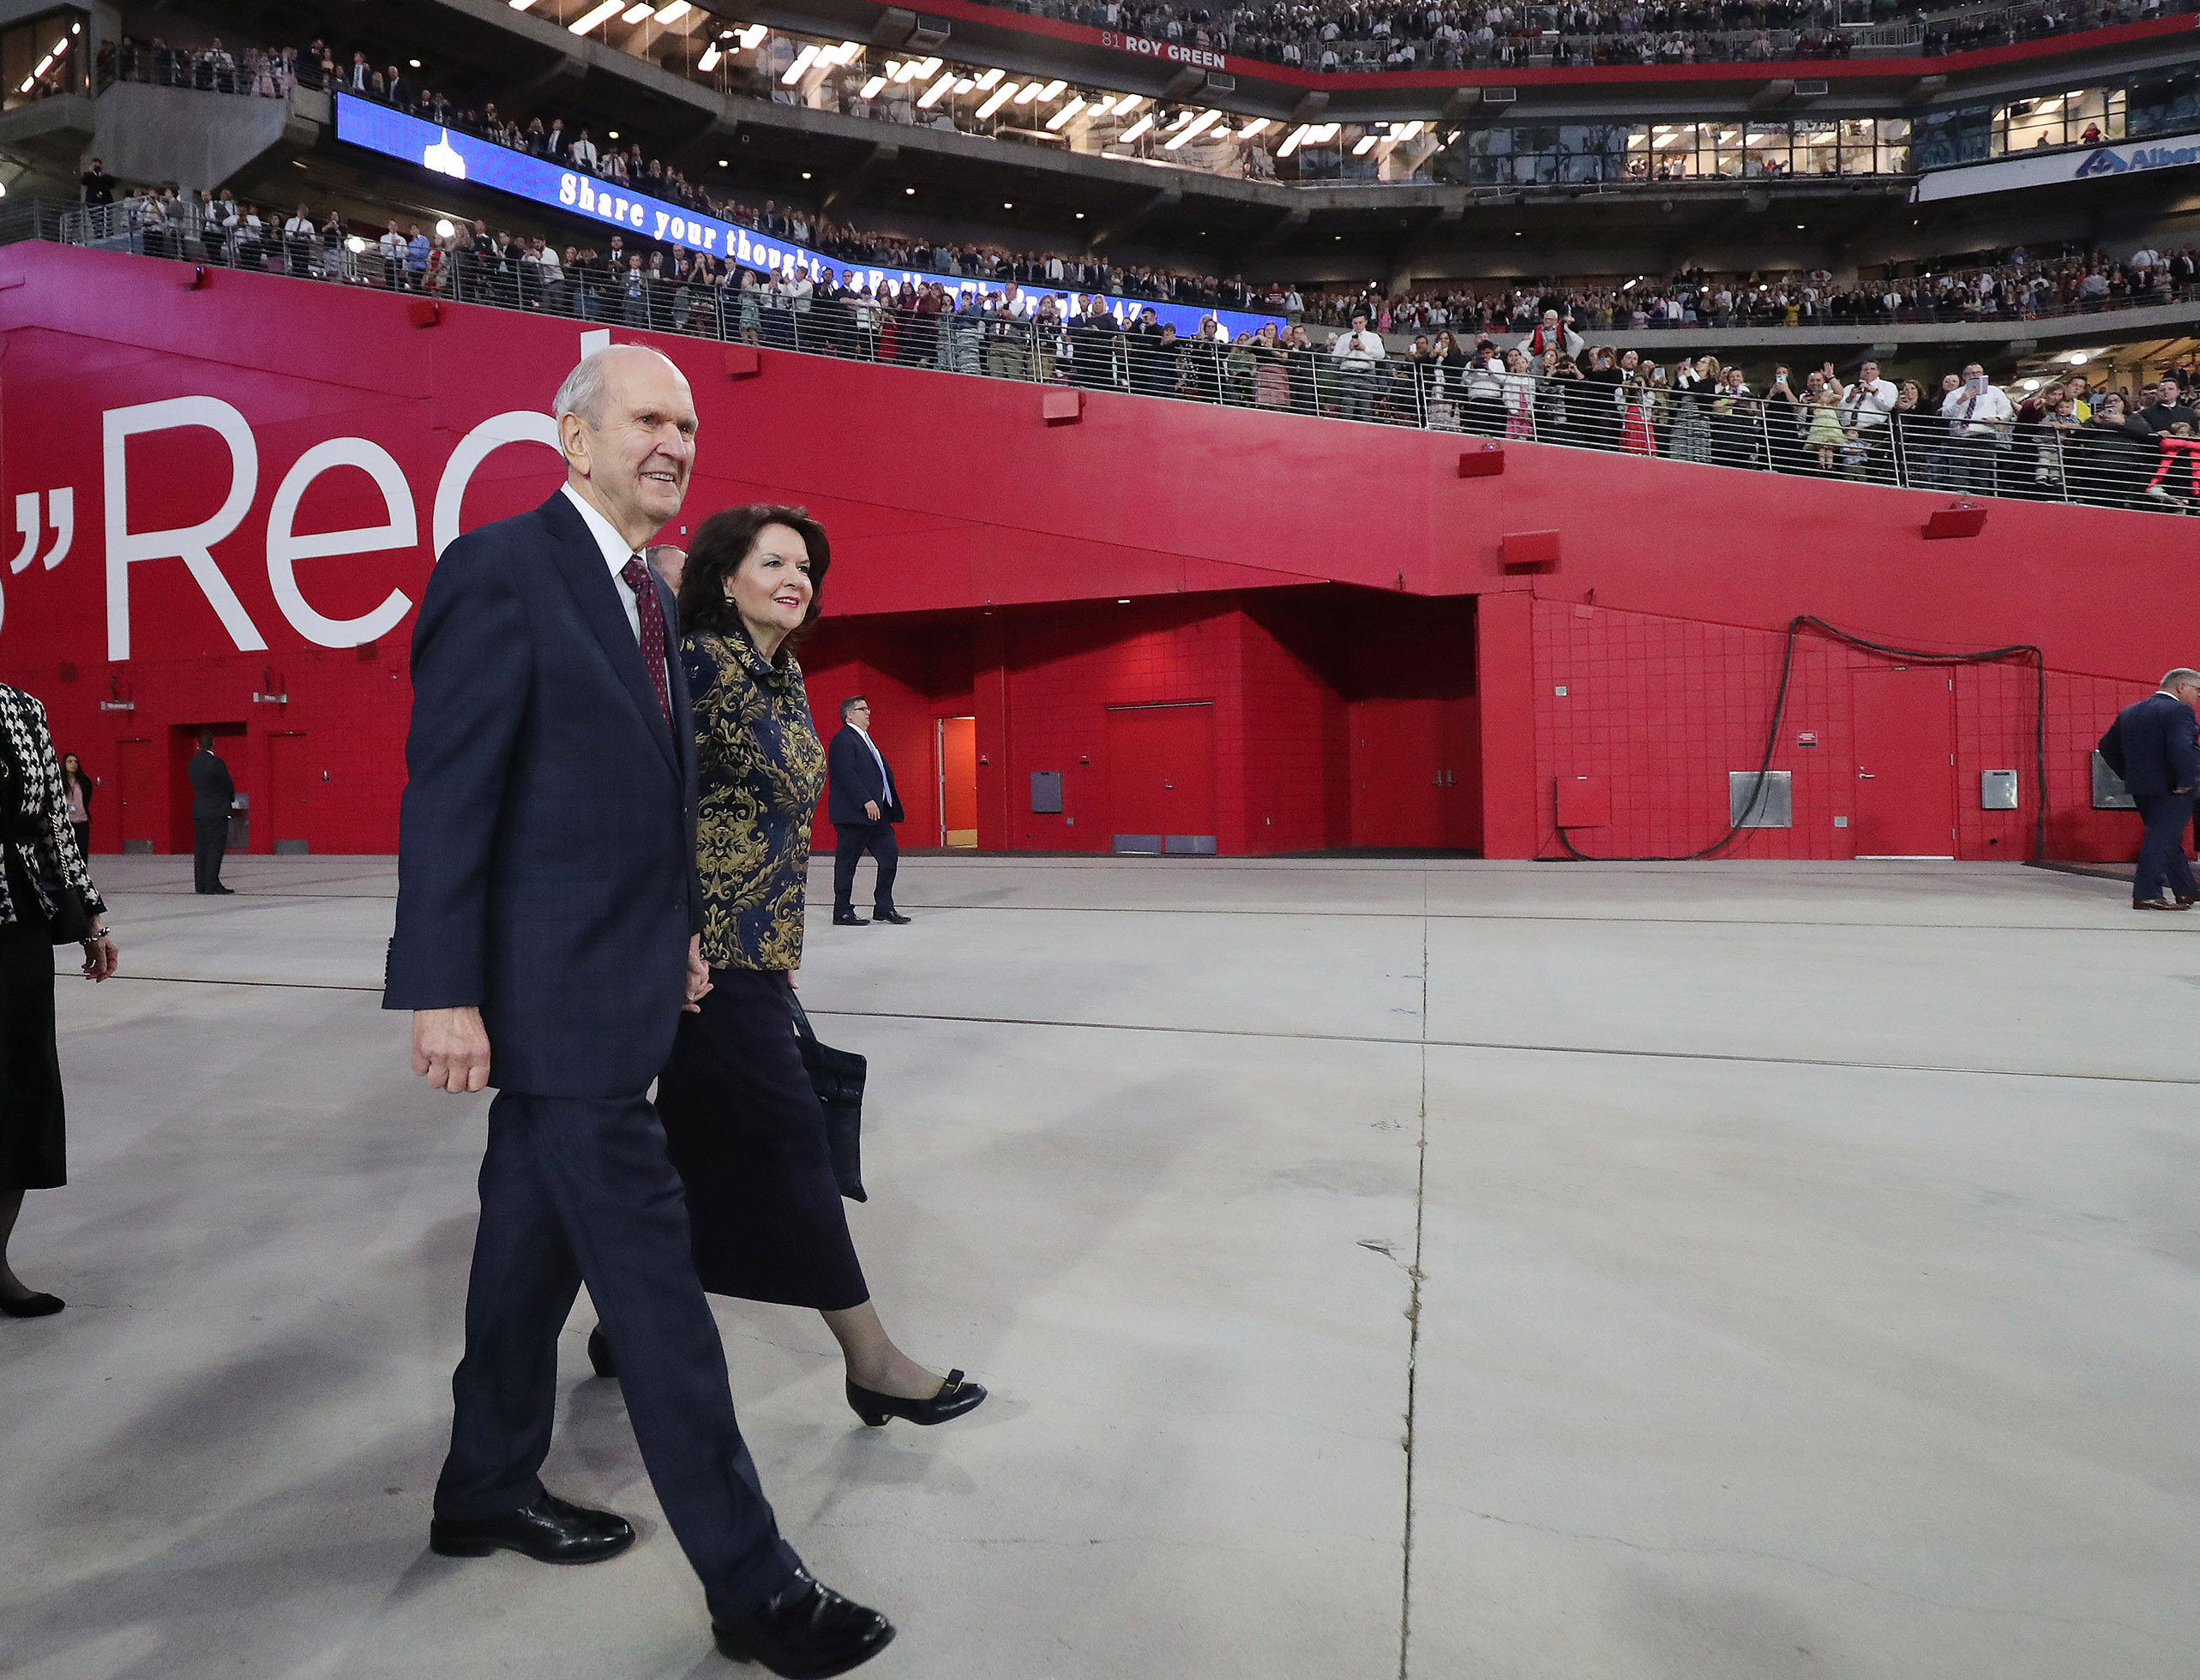 President Russell M. Nelson of The Church of Jesus Christ of Latter-day Saints and his wife, Sister Wendy Nelson, walk into the State Farm Stadium in Phoenix on Sunday, Feb. 10, 2019.